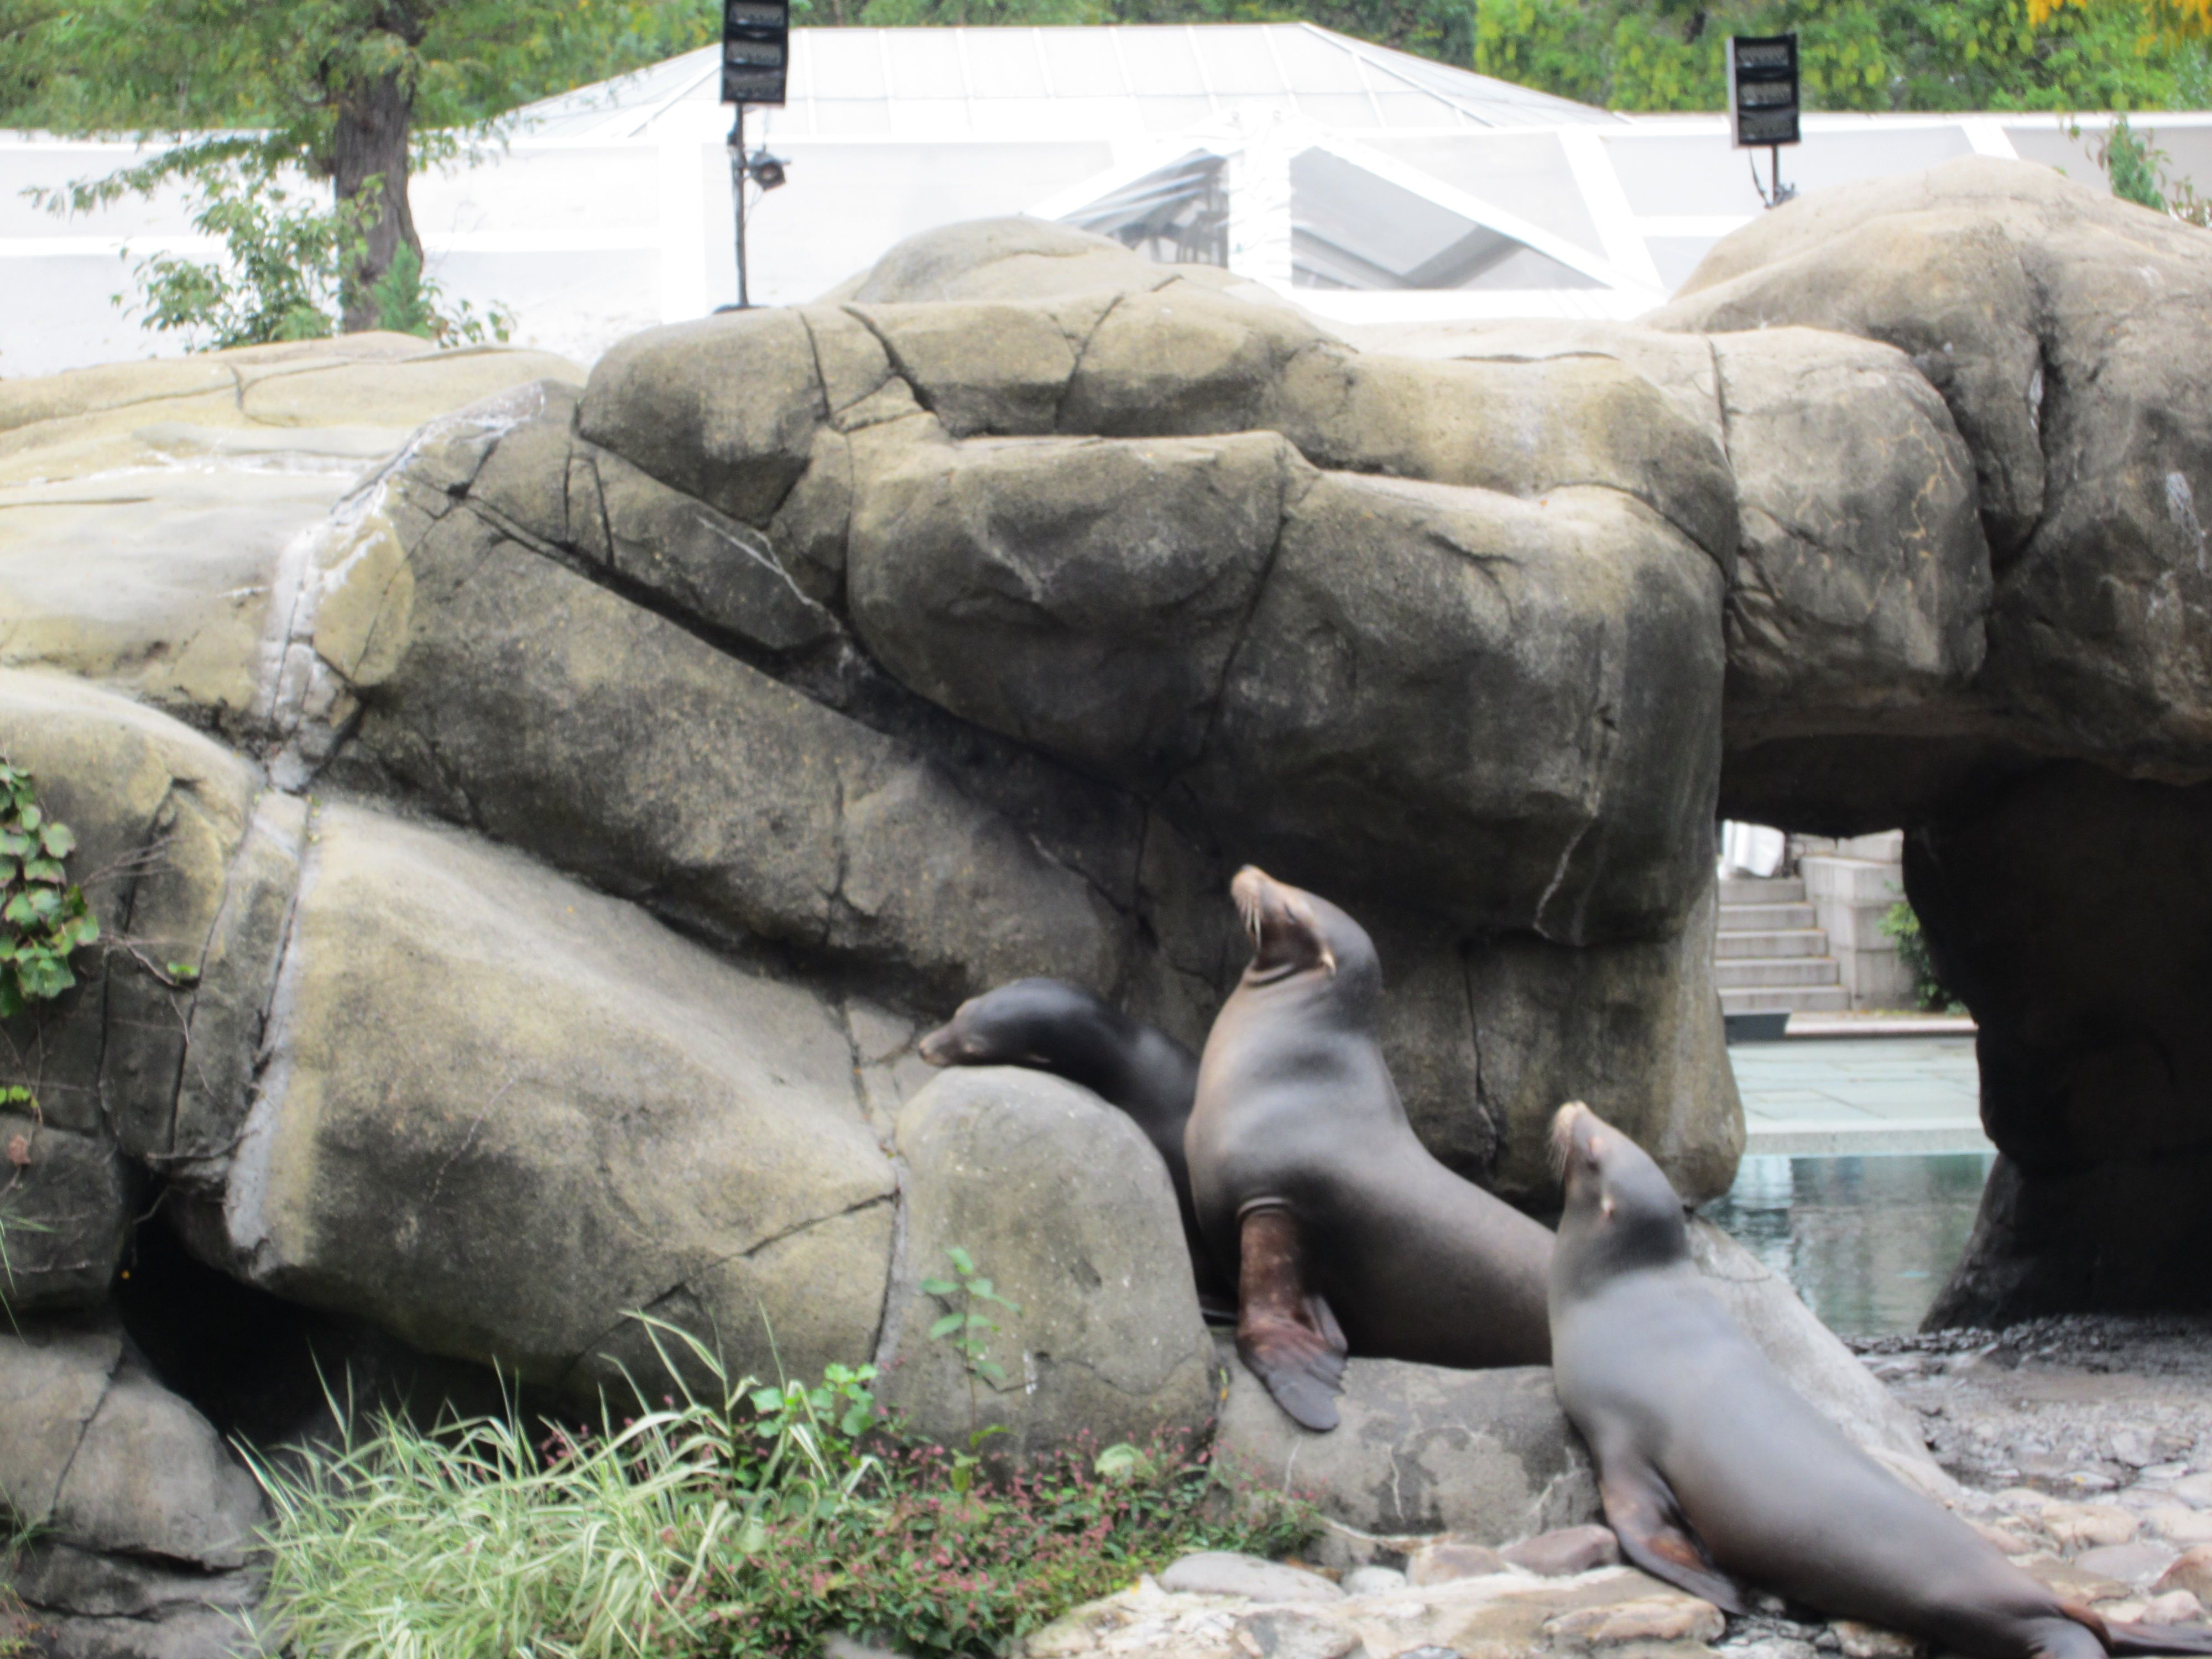 Sea Lions in Central Park Zoo